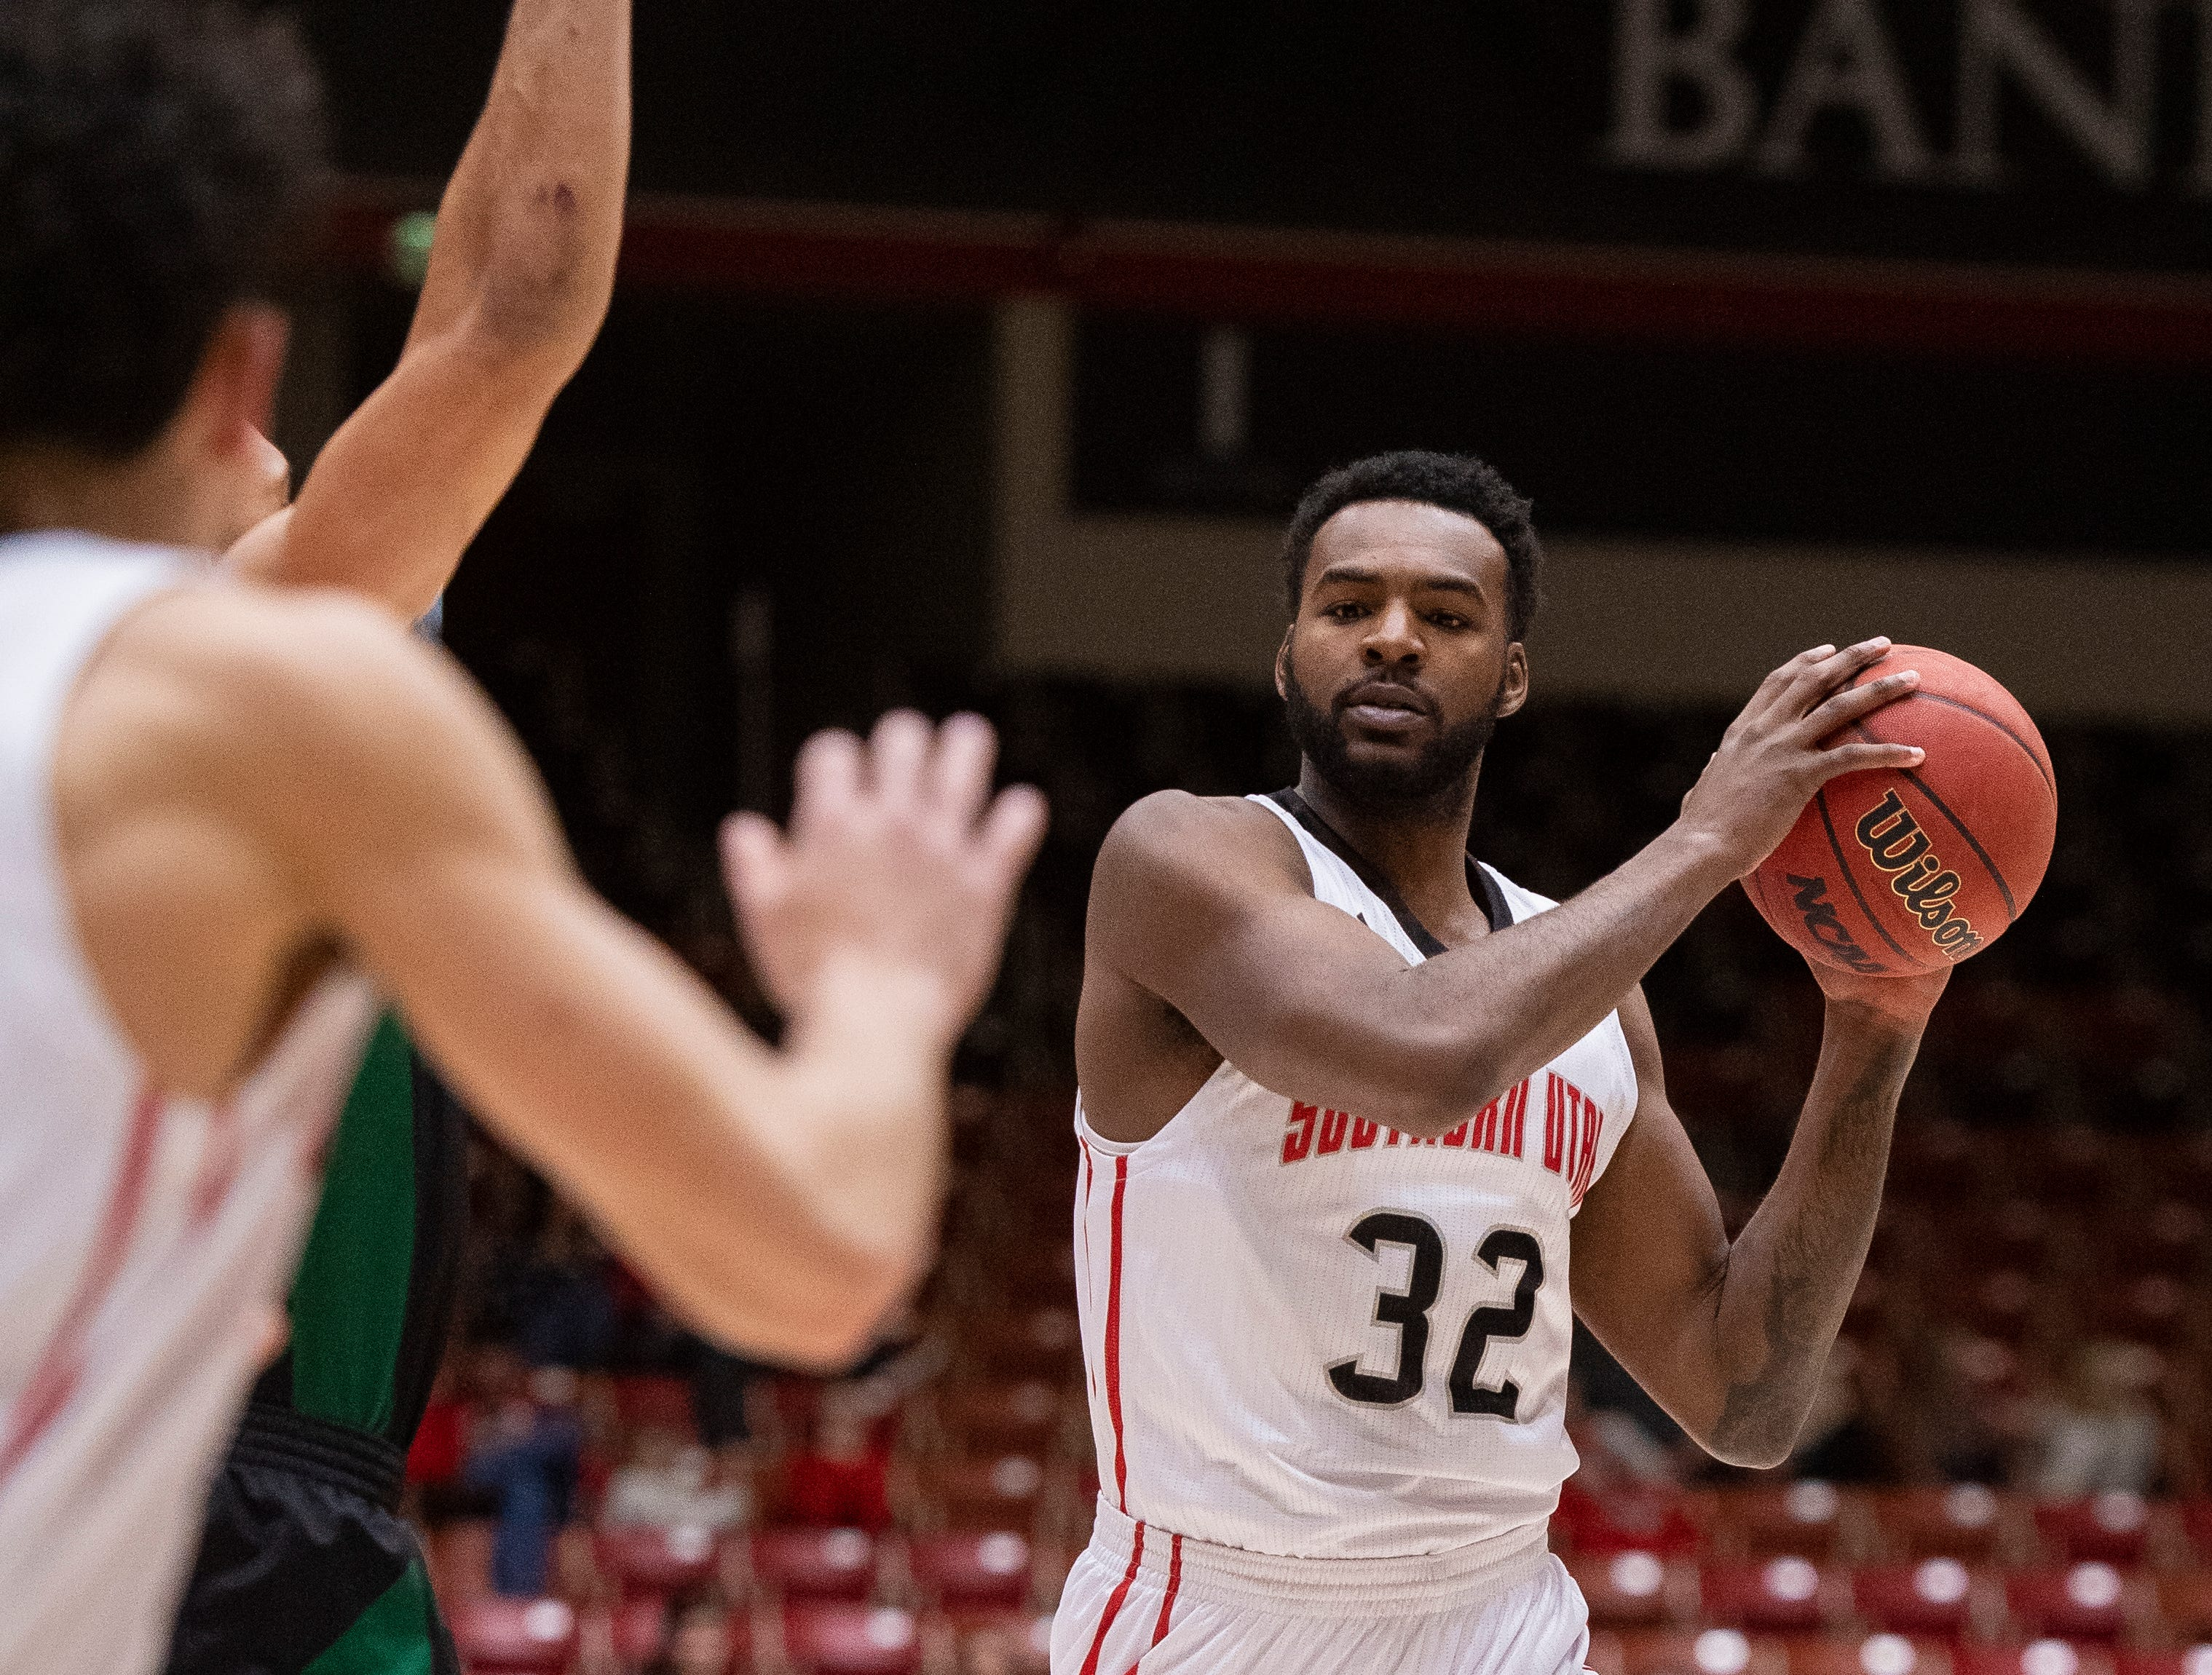 Southern Utah University junior Andre Adams (32) looks for an open pass against Sacramento State in the America First Event Center Saturday, January 19, 2019.